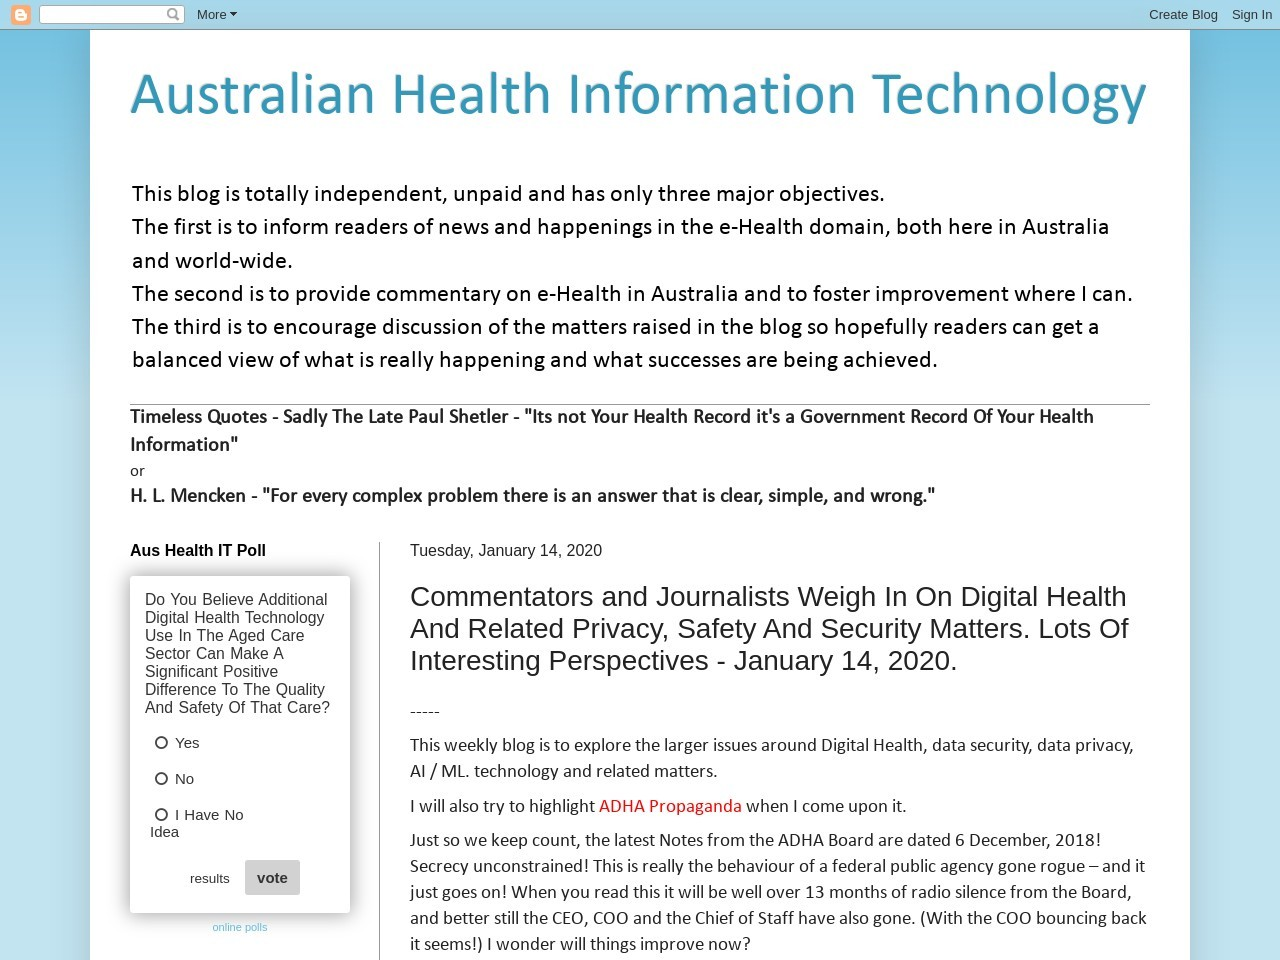 Commentators and Journalists Weigh In On Digital Health And Related Privacy, Safety And Security…